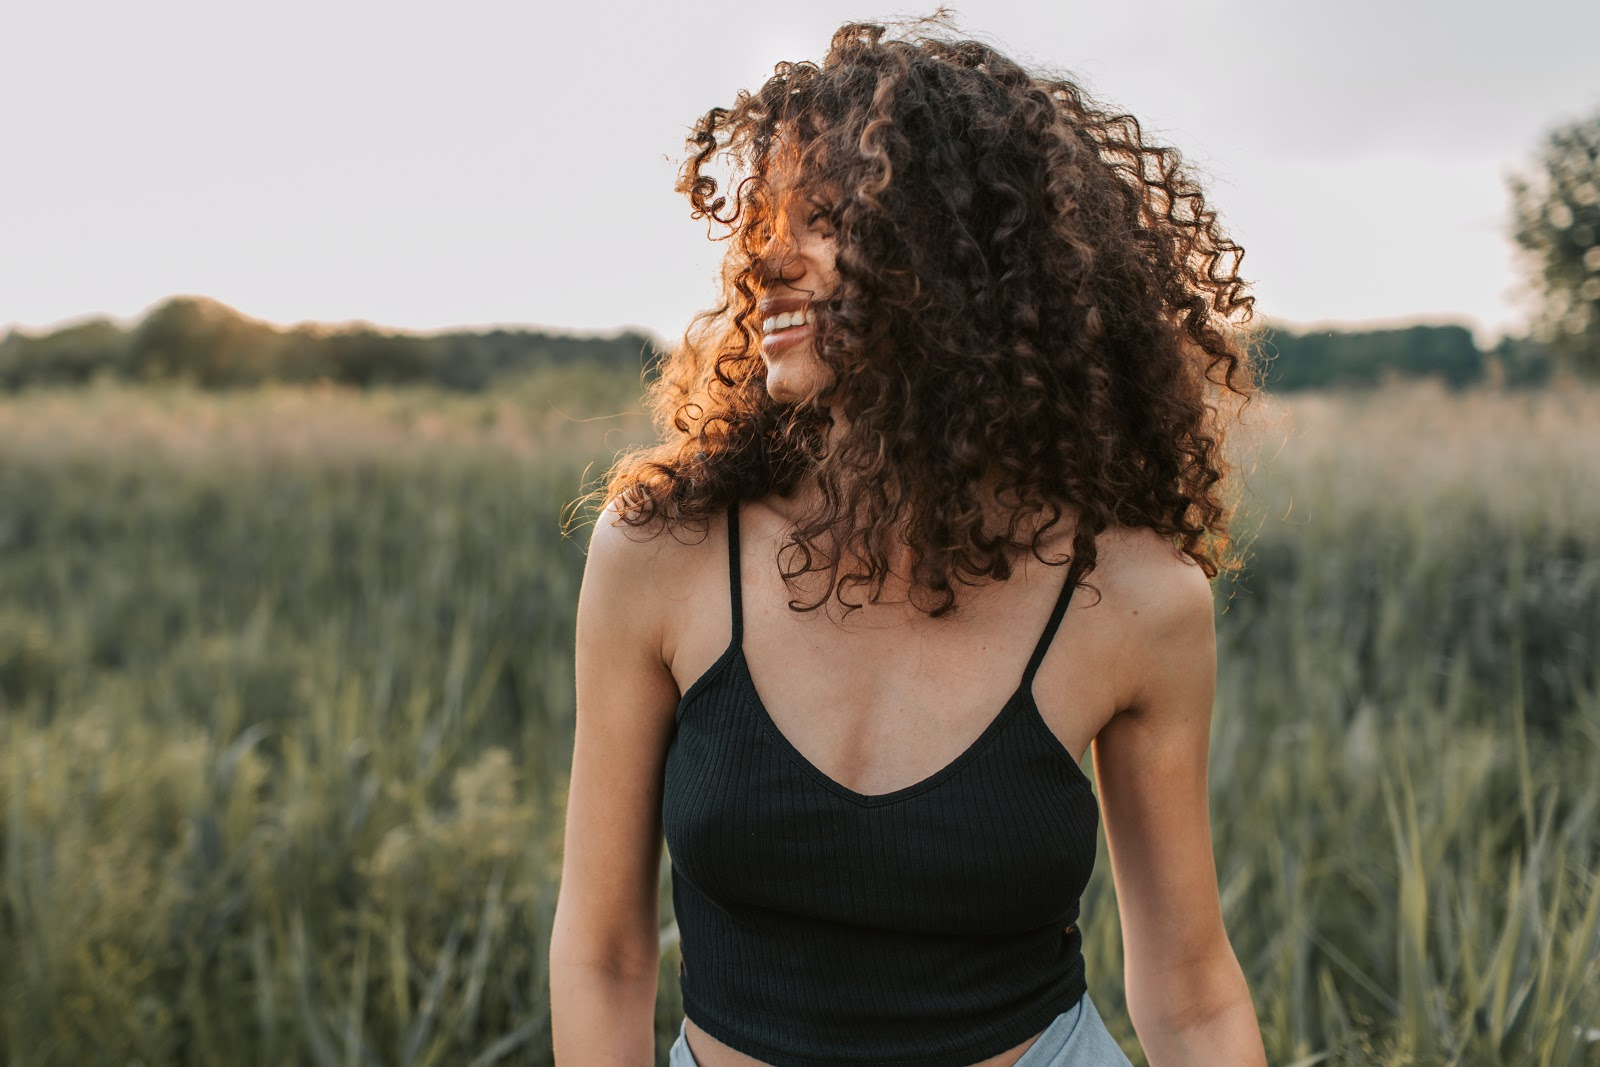 A curly haired woman laughing in a grass field